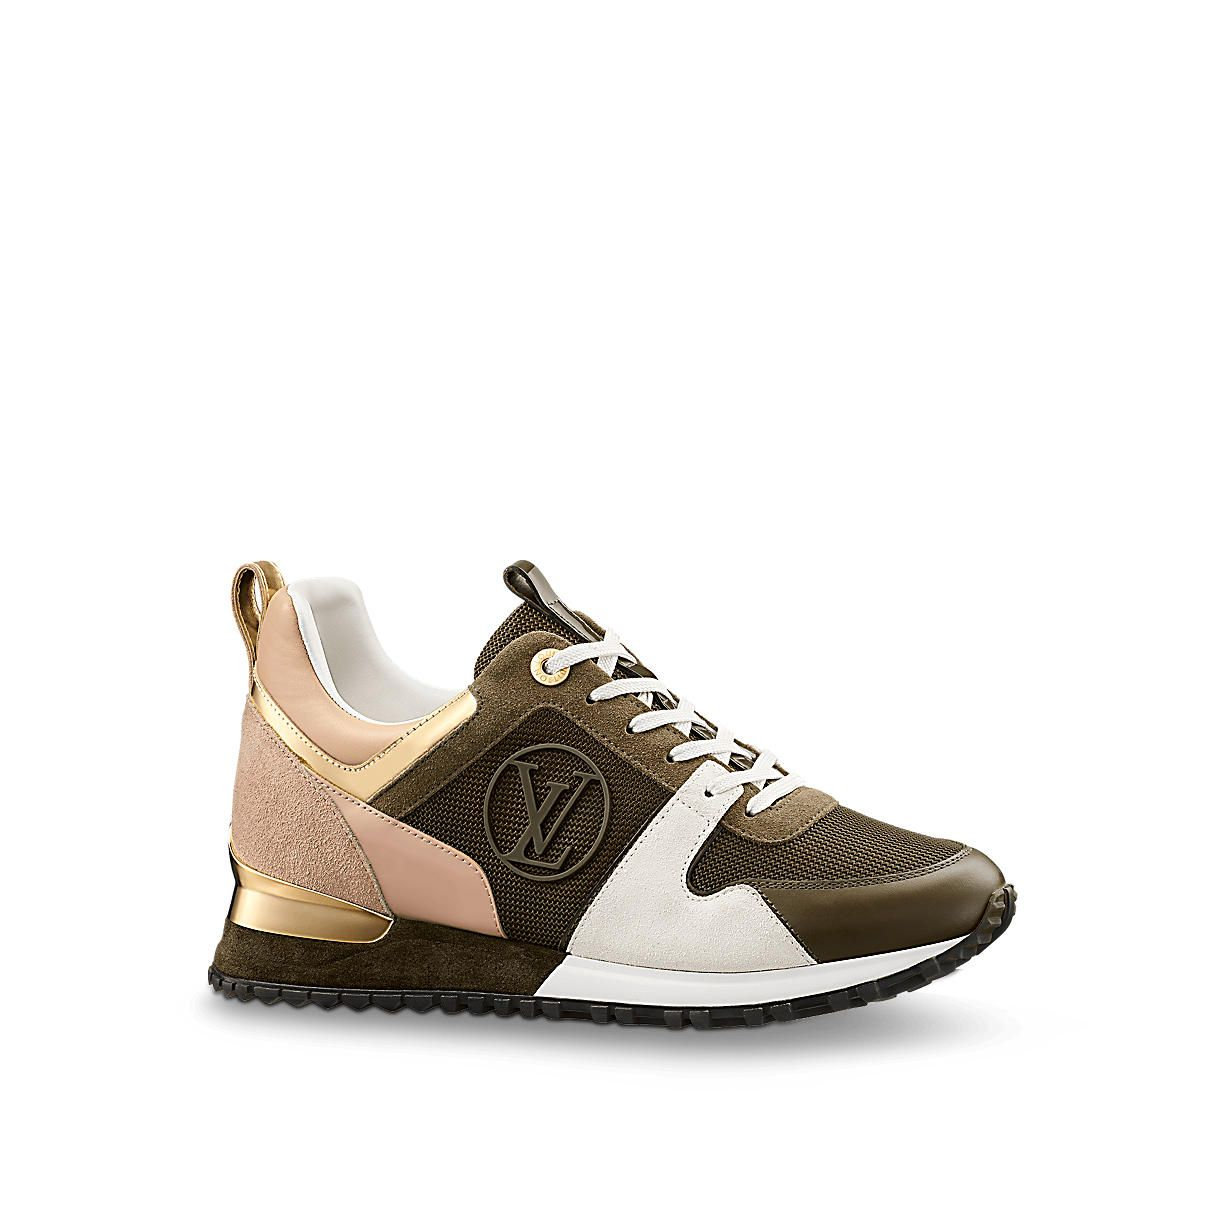 Run Away Sneaker in WOMEN's SHOES collections by Louis Vuitton